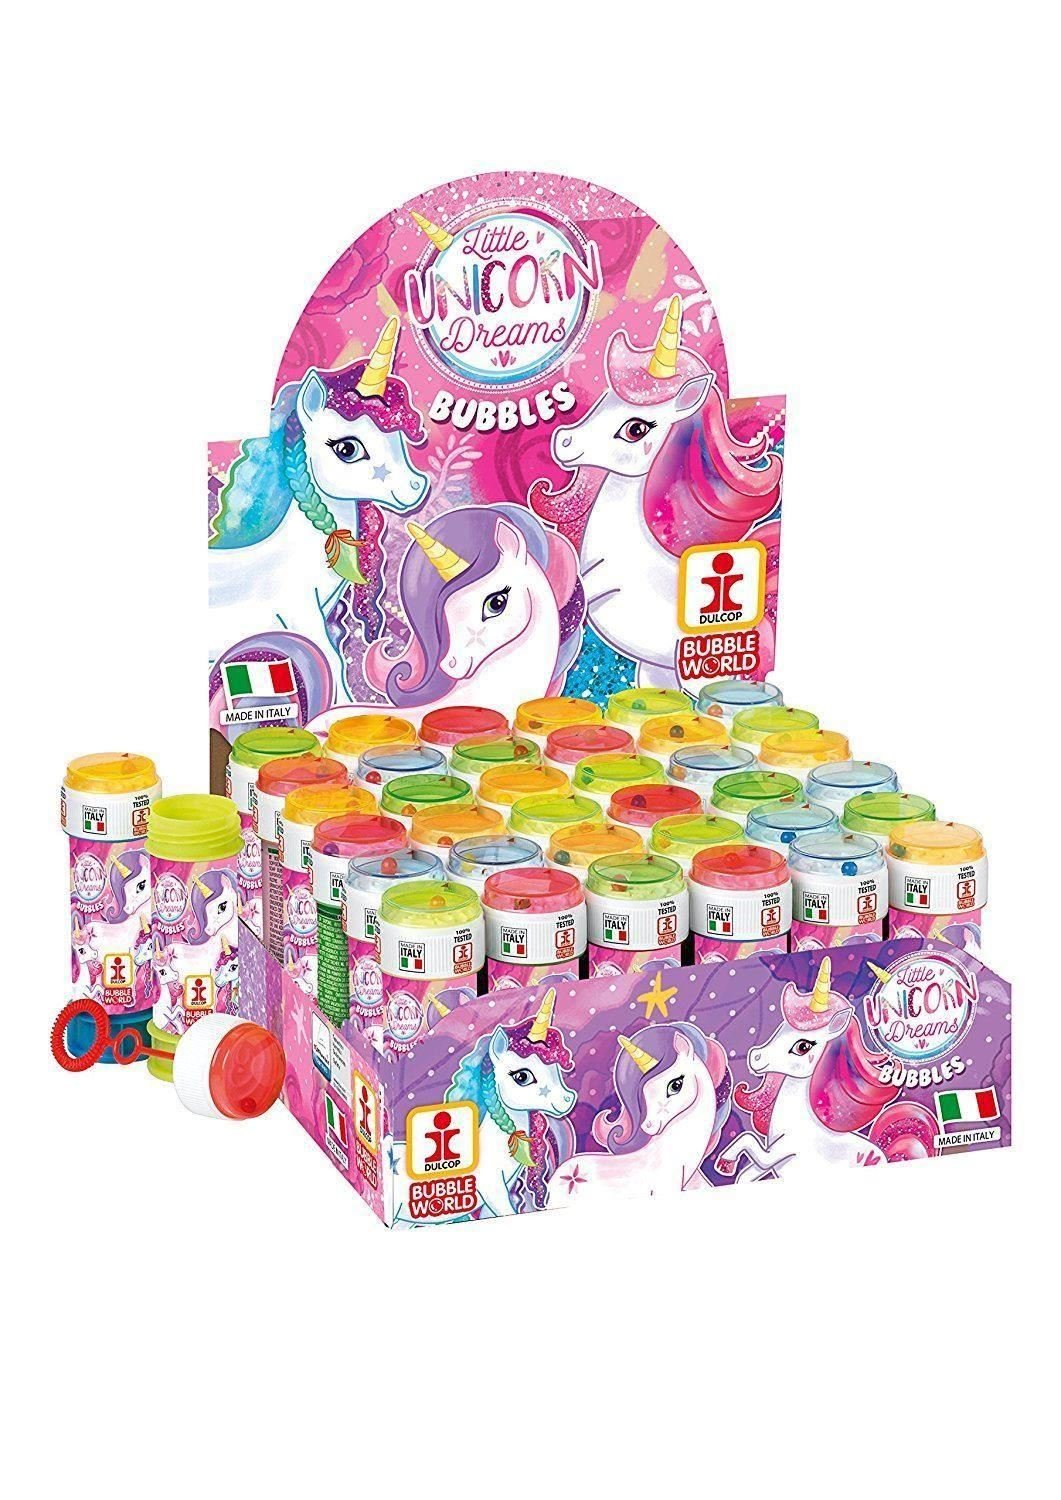 12 x Unicorn Bubbles with Puzzle Maze Lid The Harlequin Brand